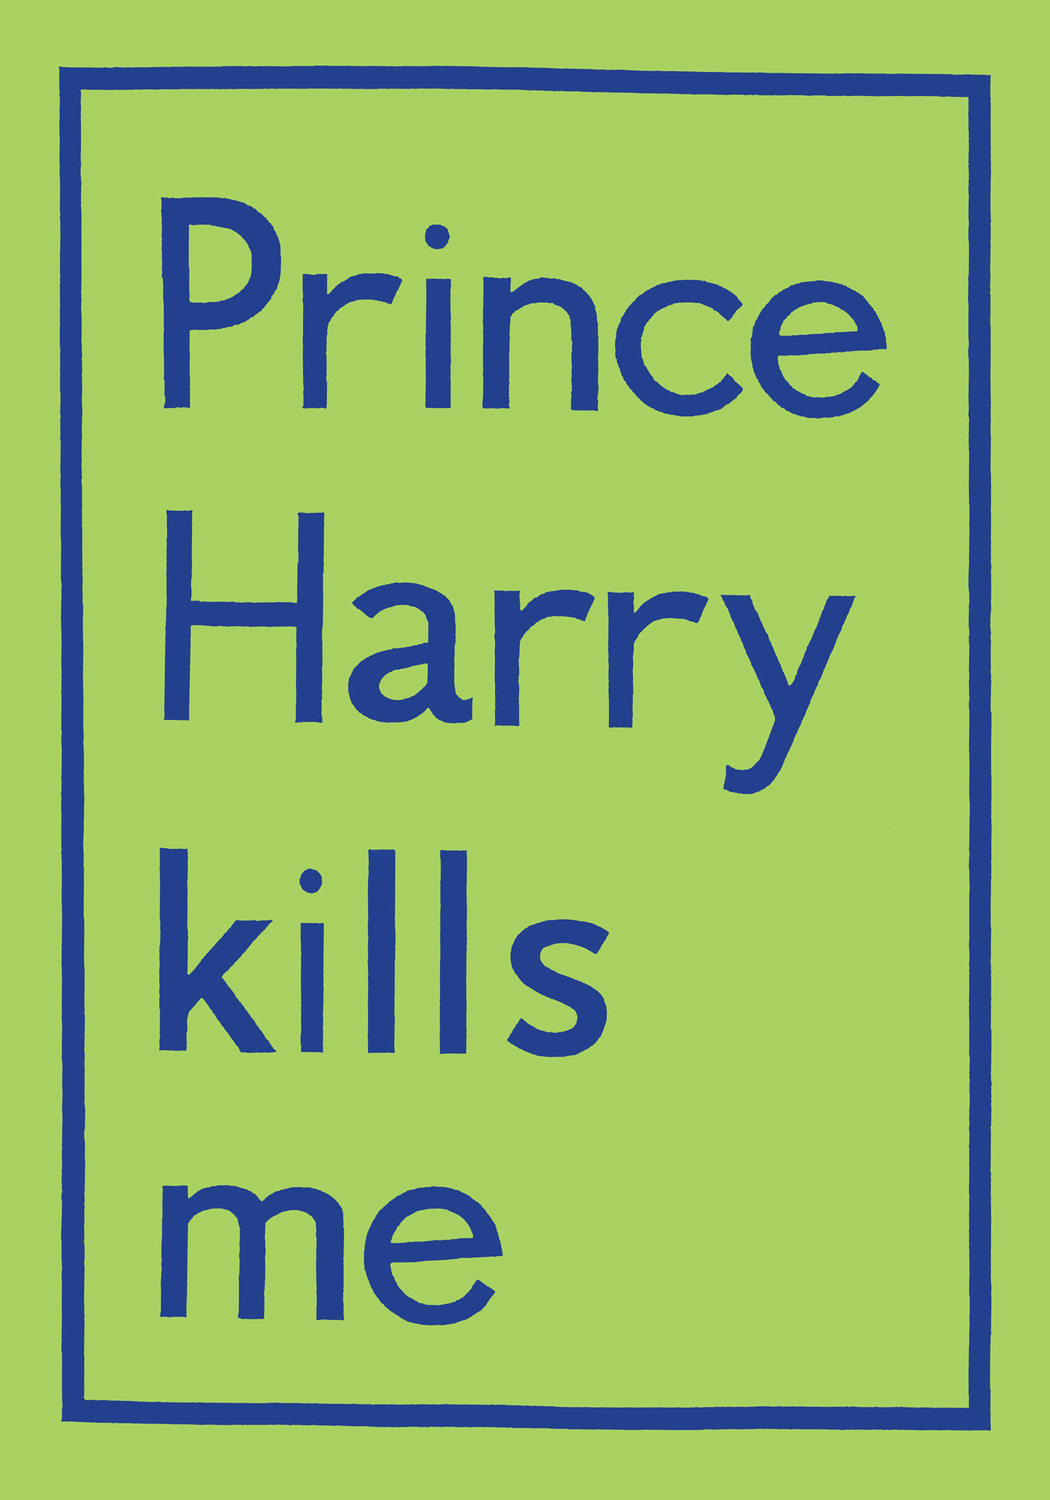 Prince Harry Kills Me